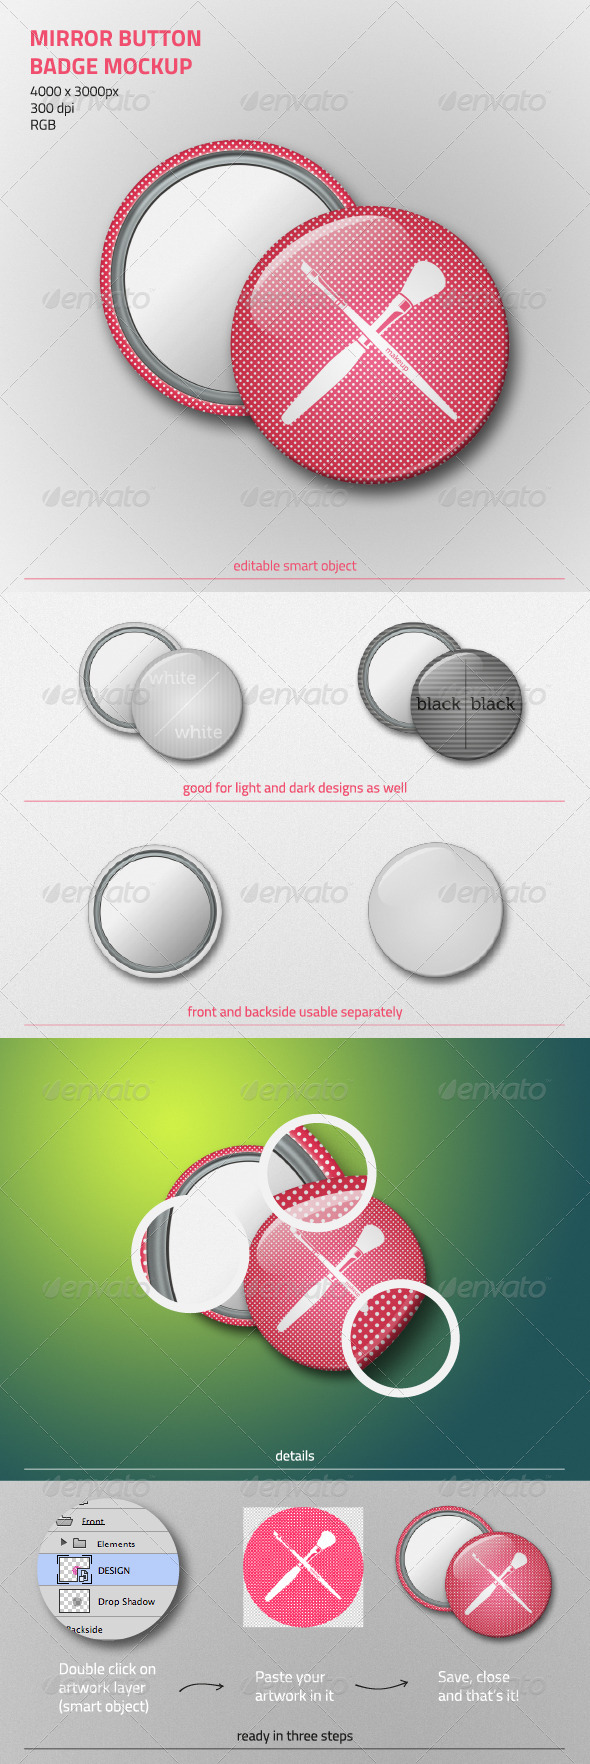 GraphicRiver Mirror Button Badge Mockup 5926272